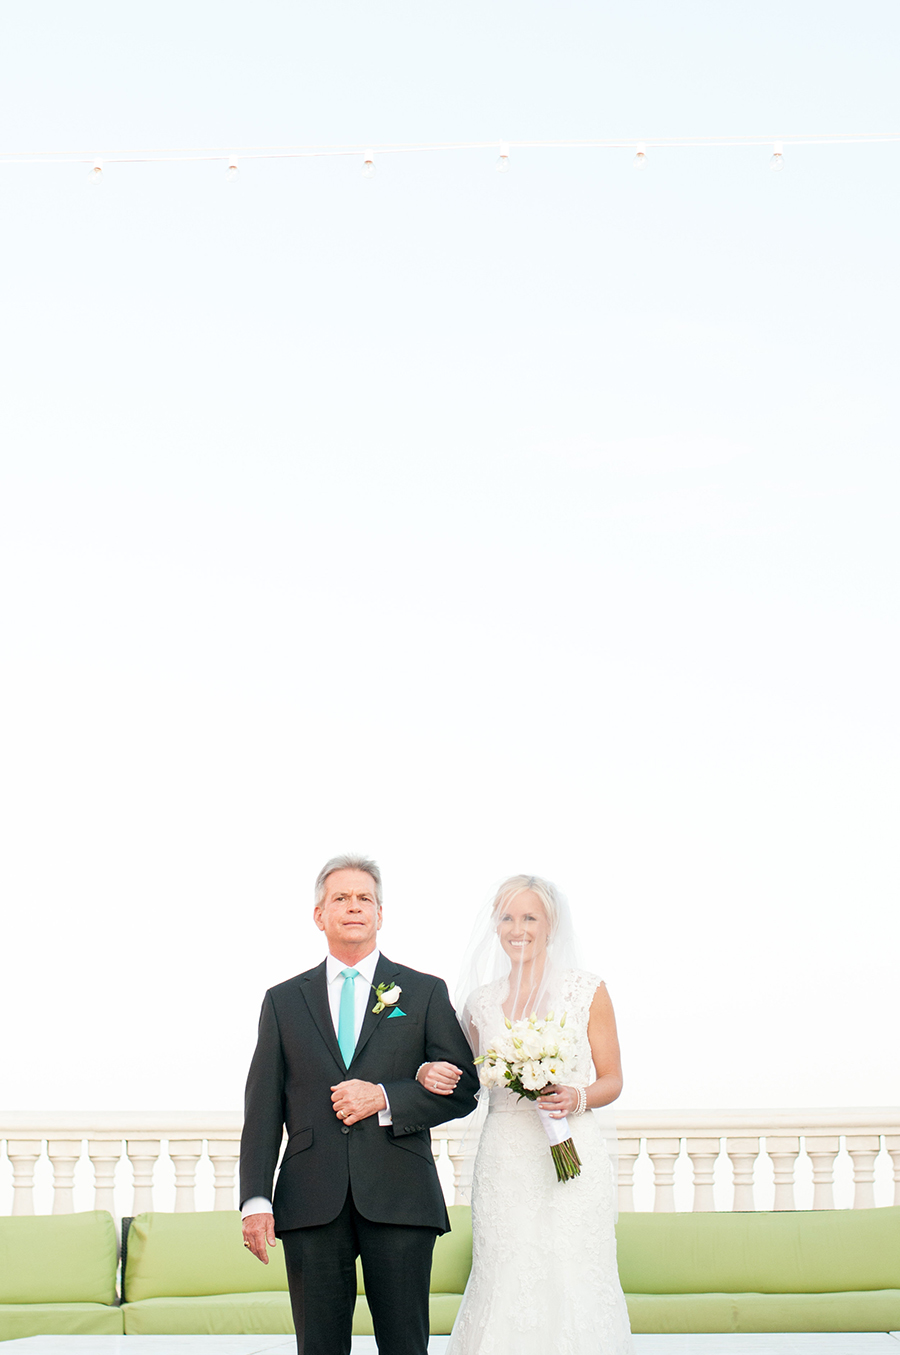 Bride and Dad Walking Down the Aisle | Clearwater Beach Wedding Ceremony | Clearwater Beach Wedding Photographer Caroline and Evan Photography